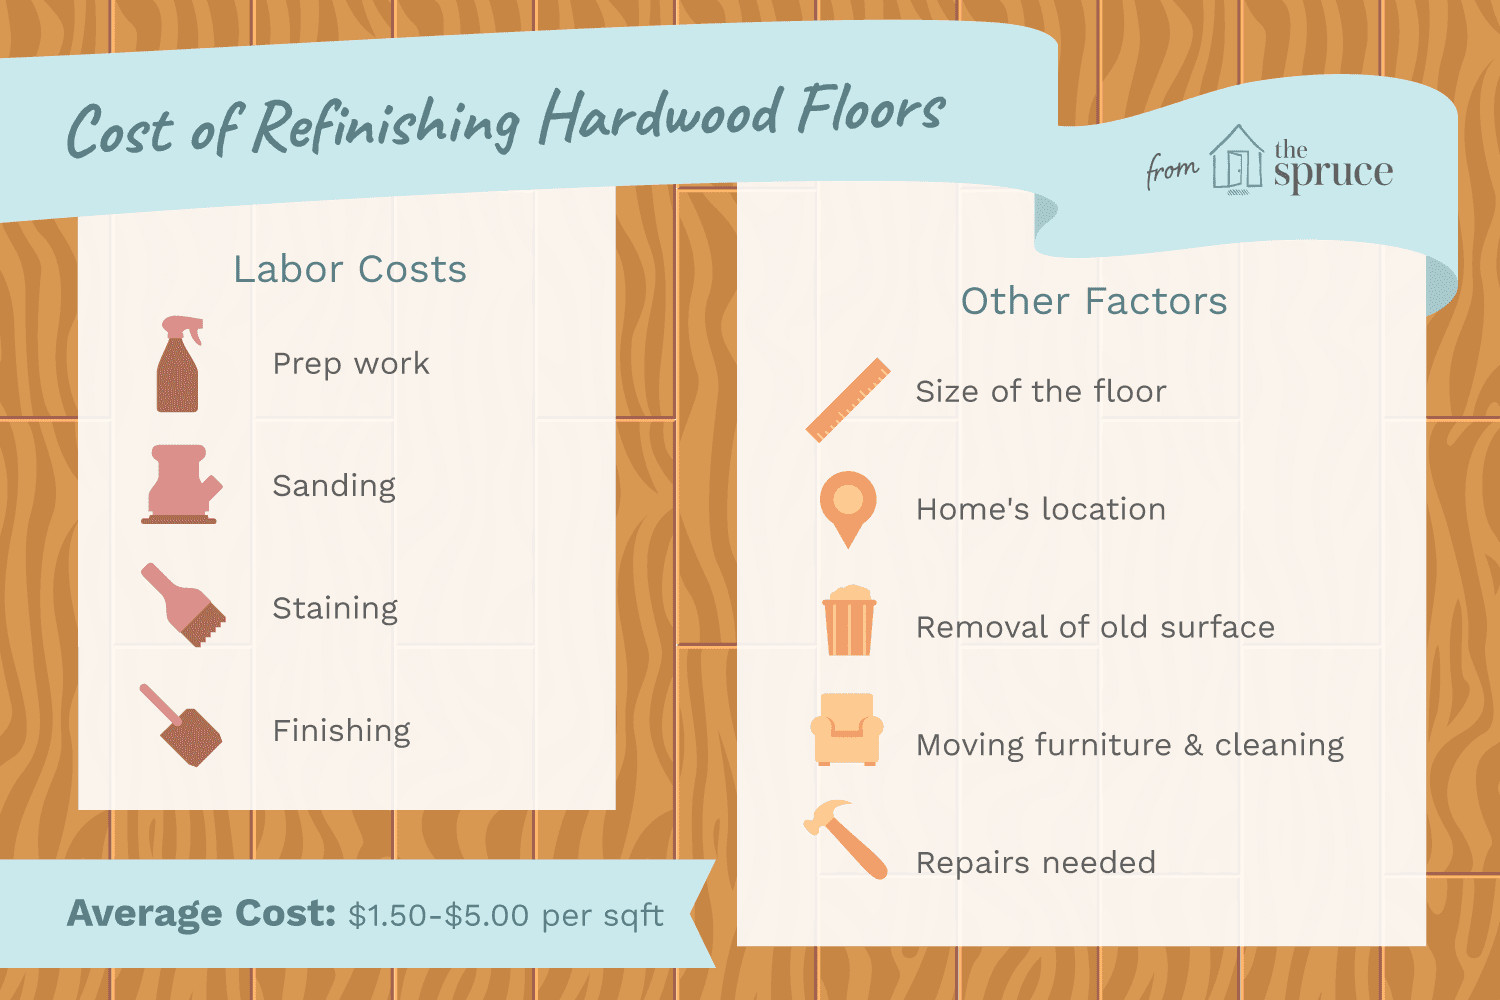 hardwood floor refinishing spokane of the cost to refinish hardwood floors in cost to refinish hardwood floors 1314853 final 5bb6259346e0fb0026825ce2